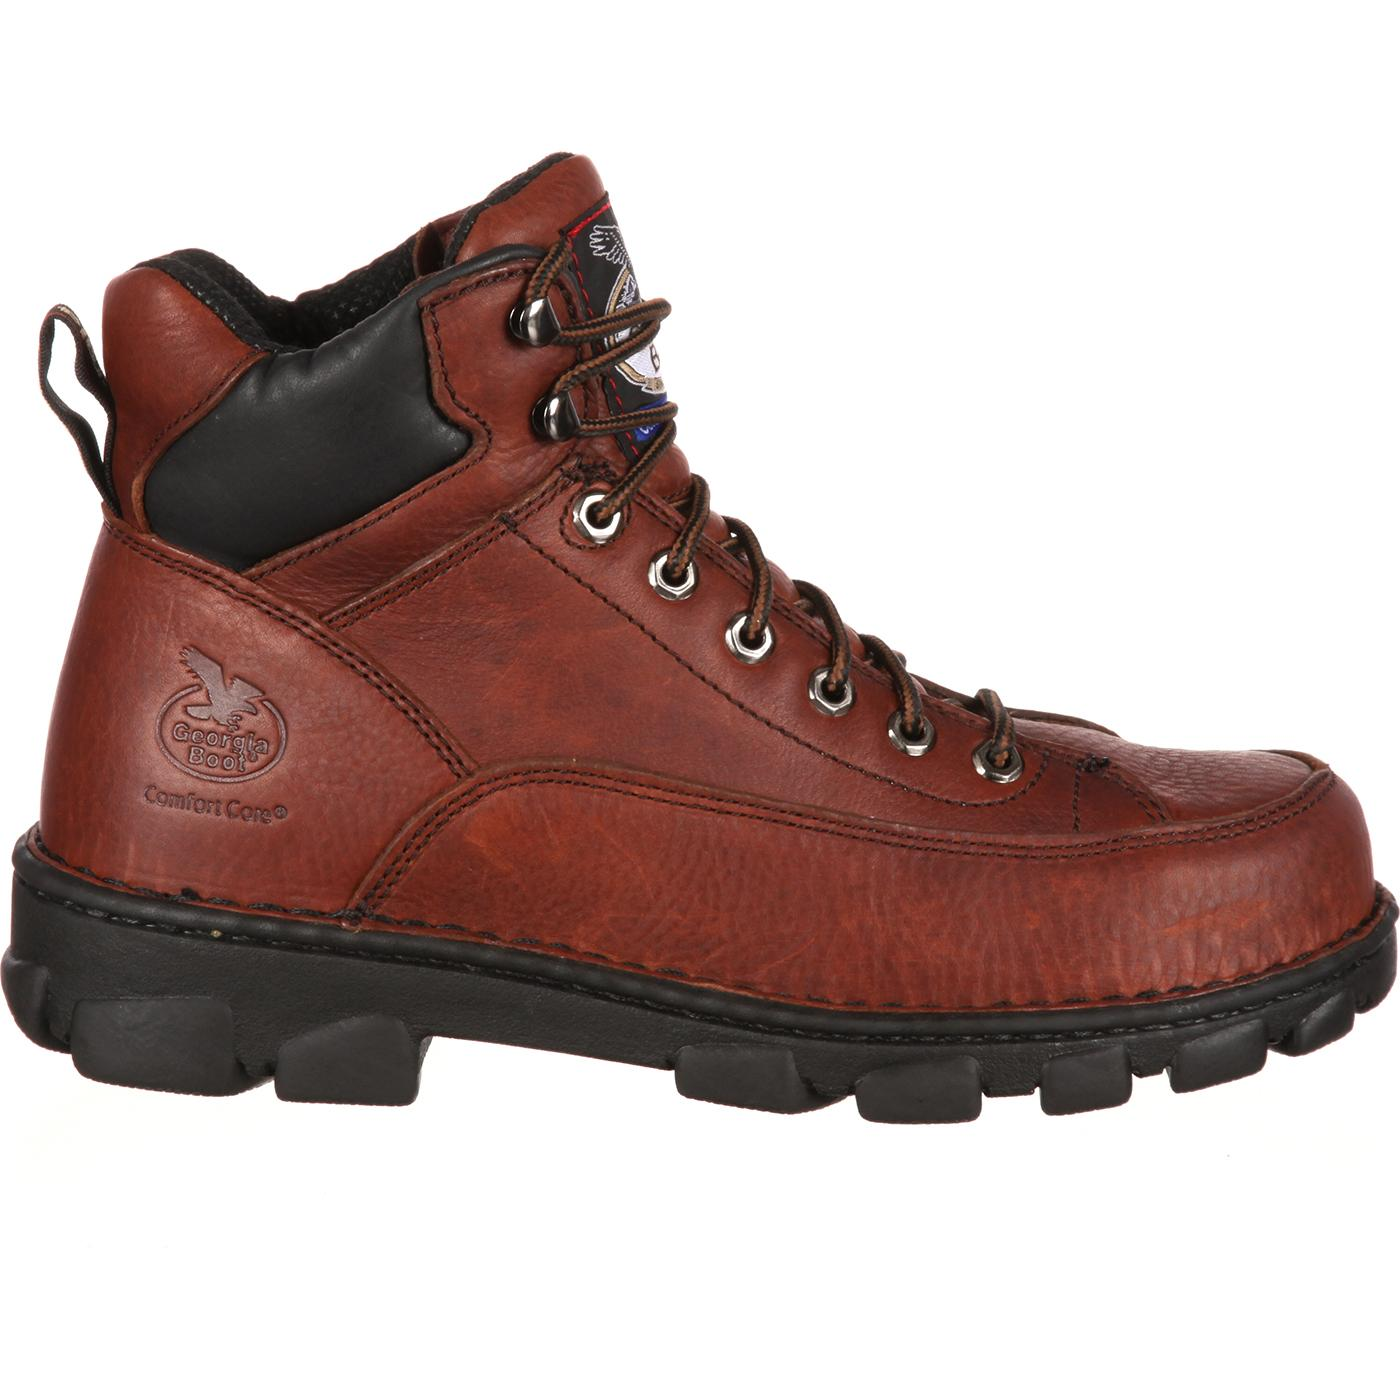 Georgia Boot Menu0026#39;s Eagle Light Steel Toe Work Boots - Style #G6395